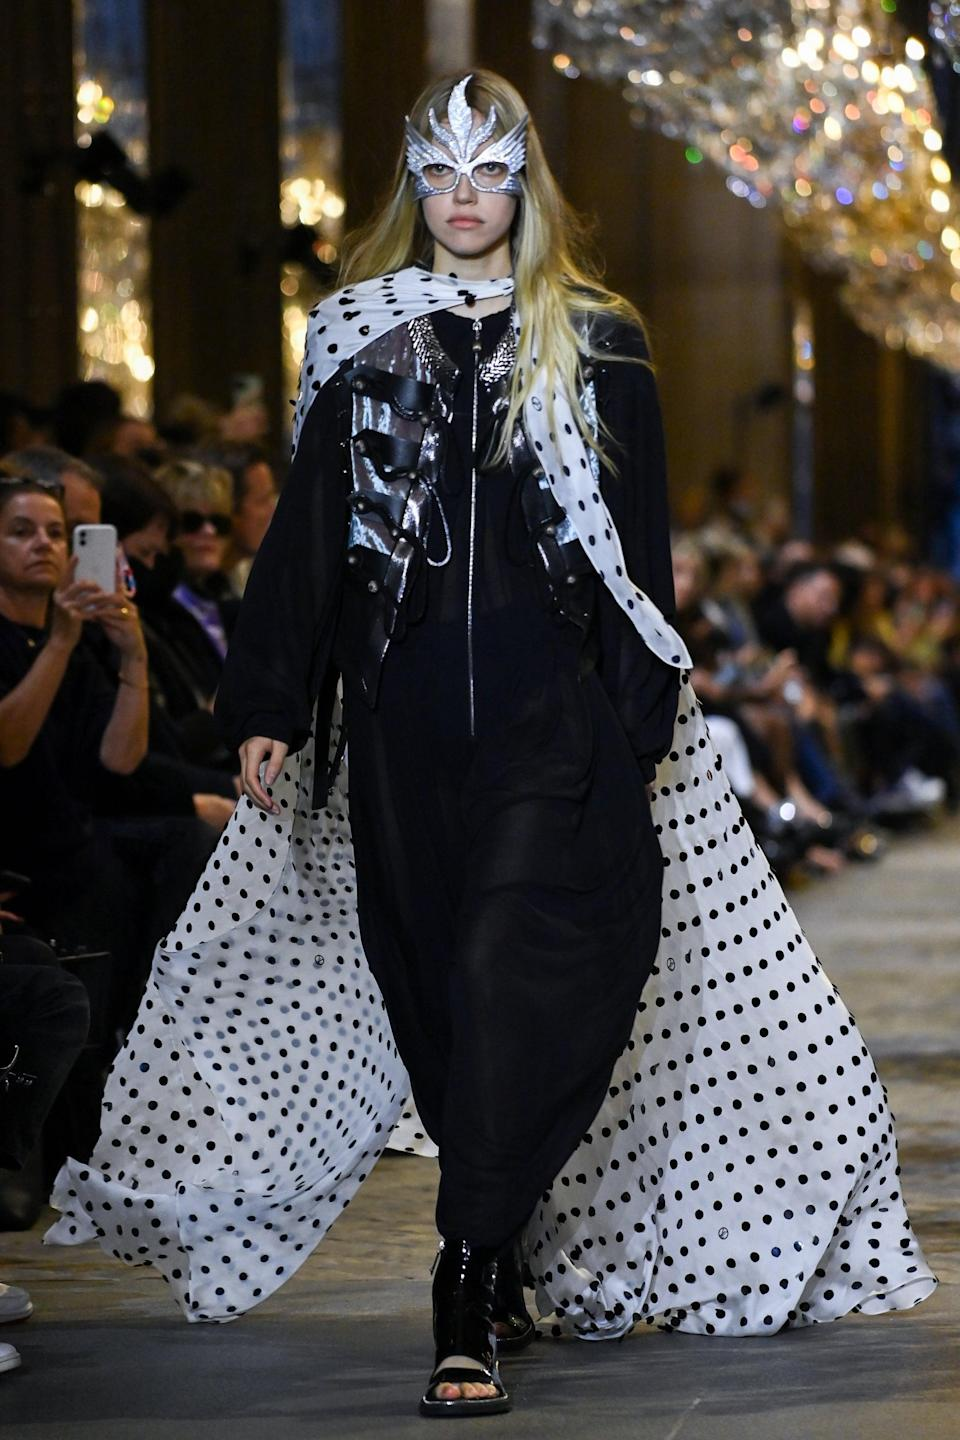 <p>Alright, then, polka dots are back.</p>